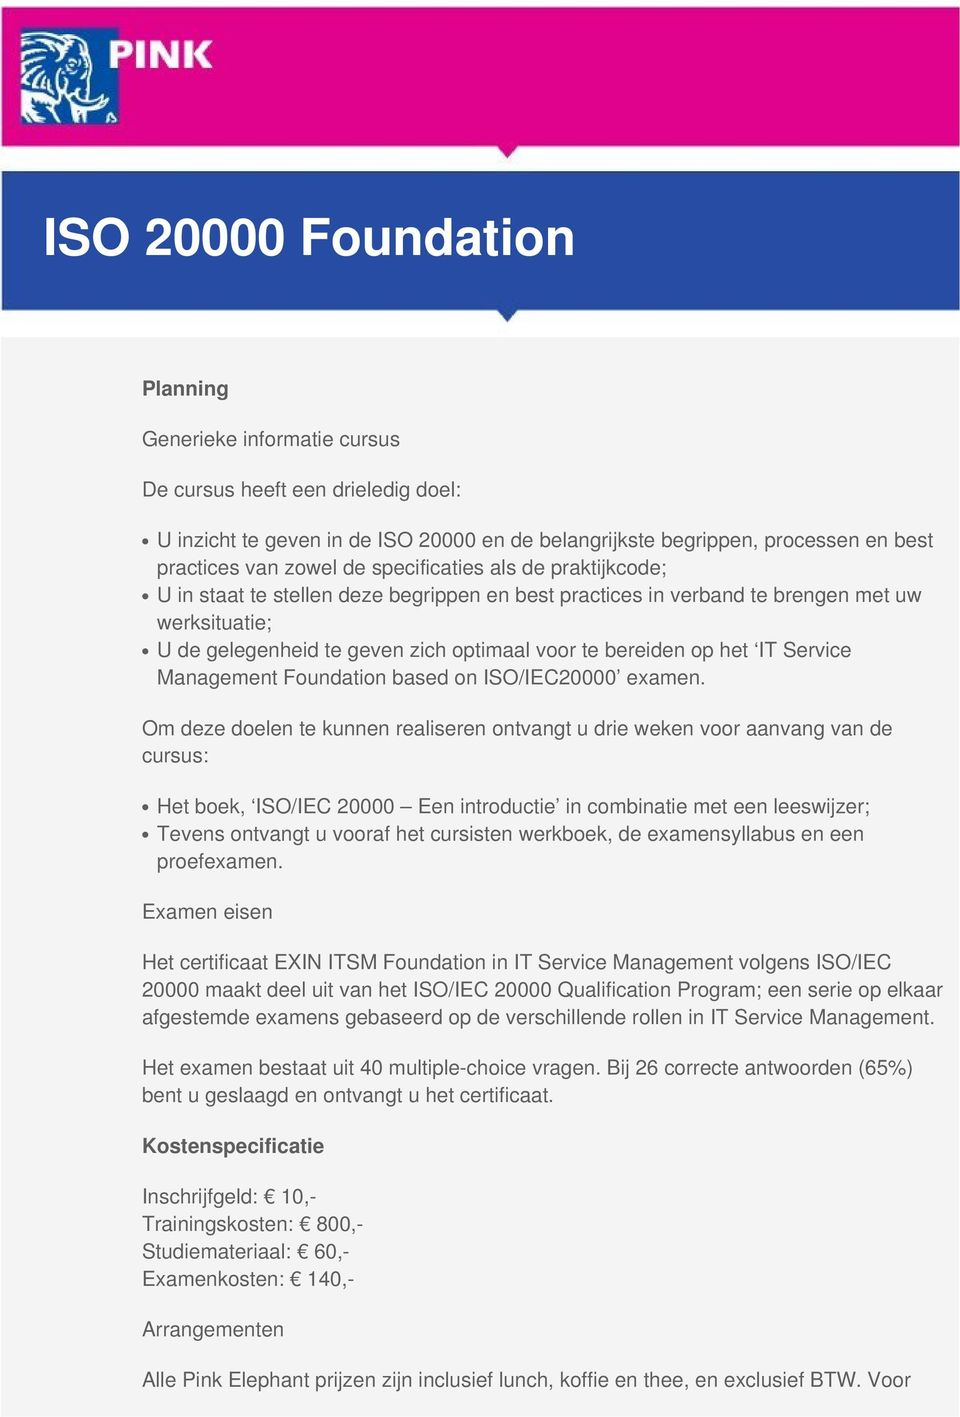 IT Service Management Foundation based on ISO/IEC20000 examen.